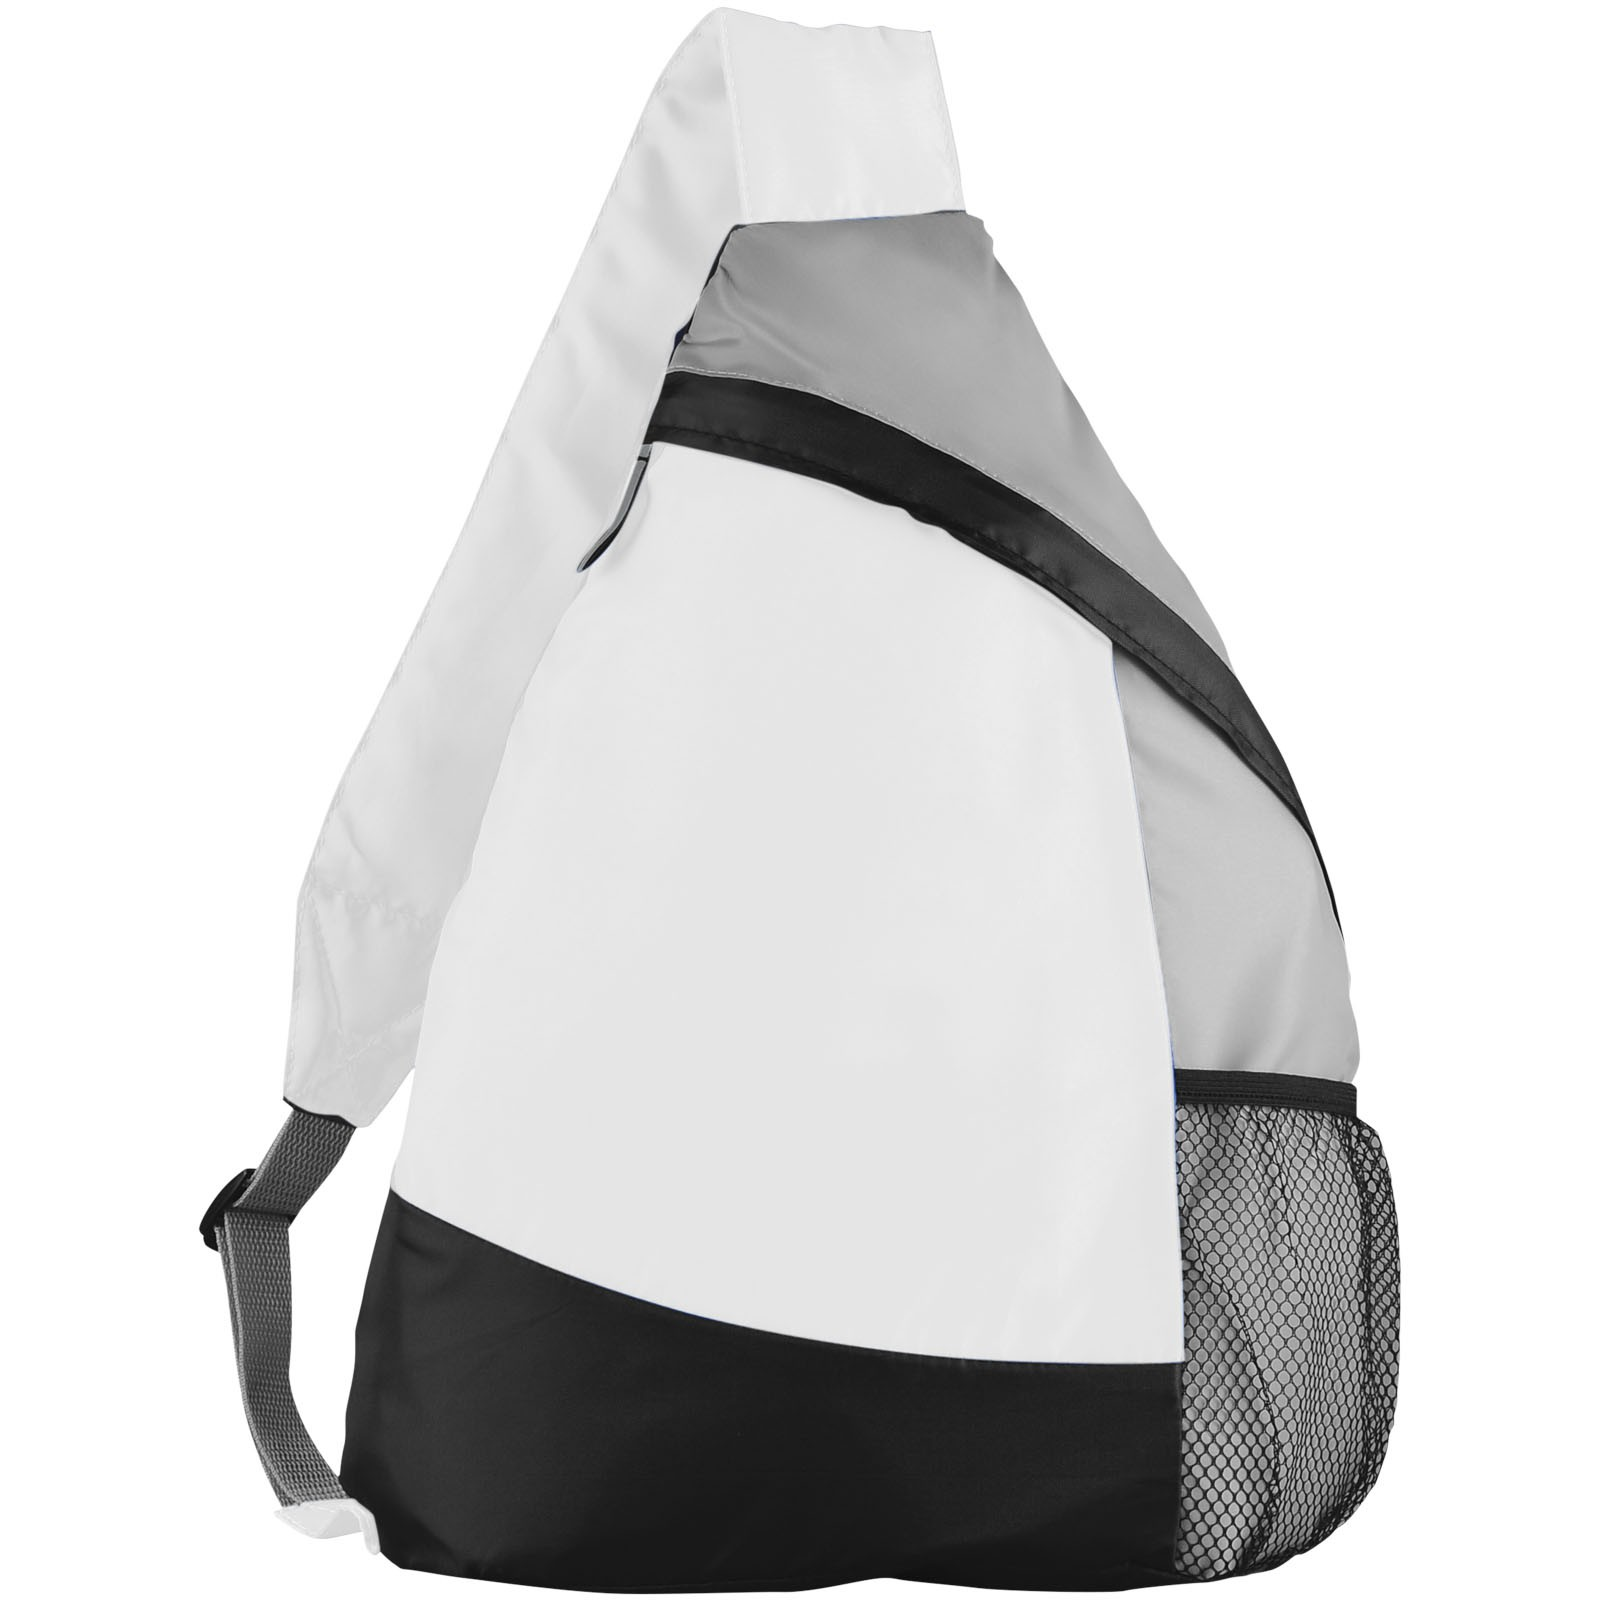 Armada sling backpack - White / Solid black / Grey